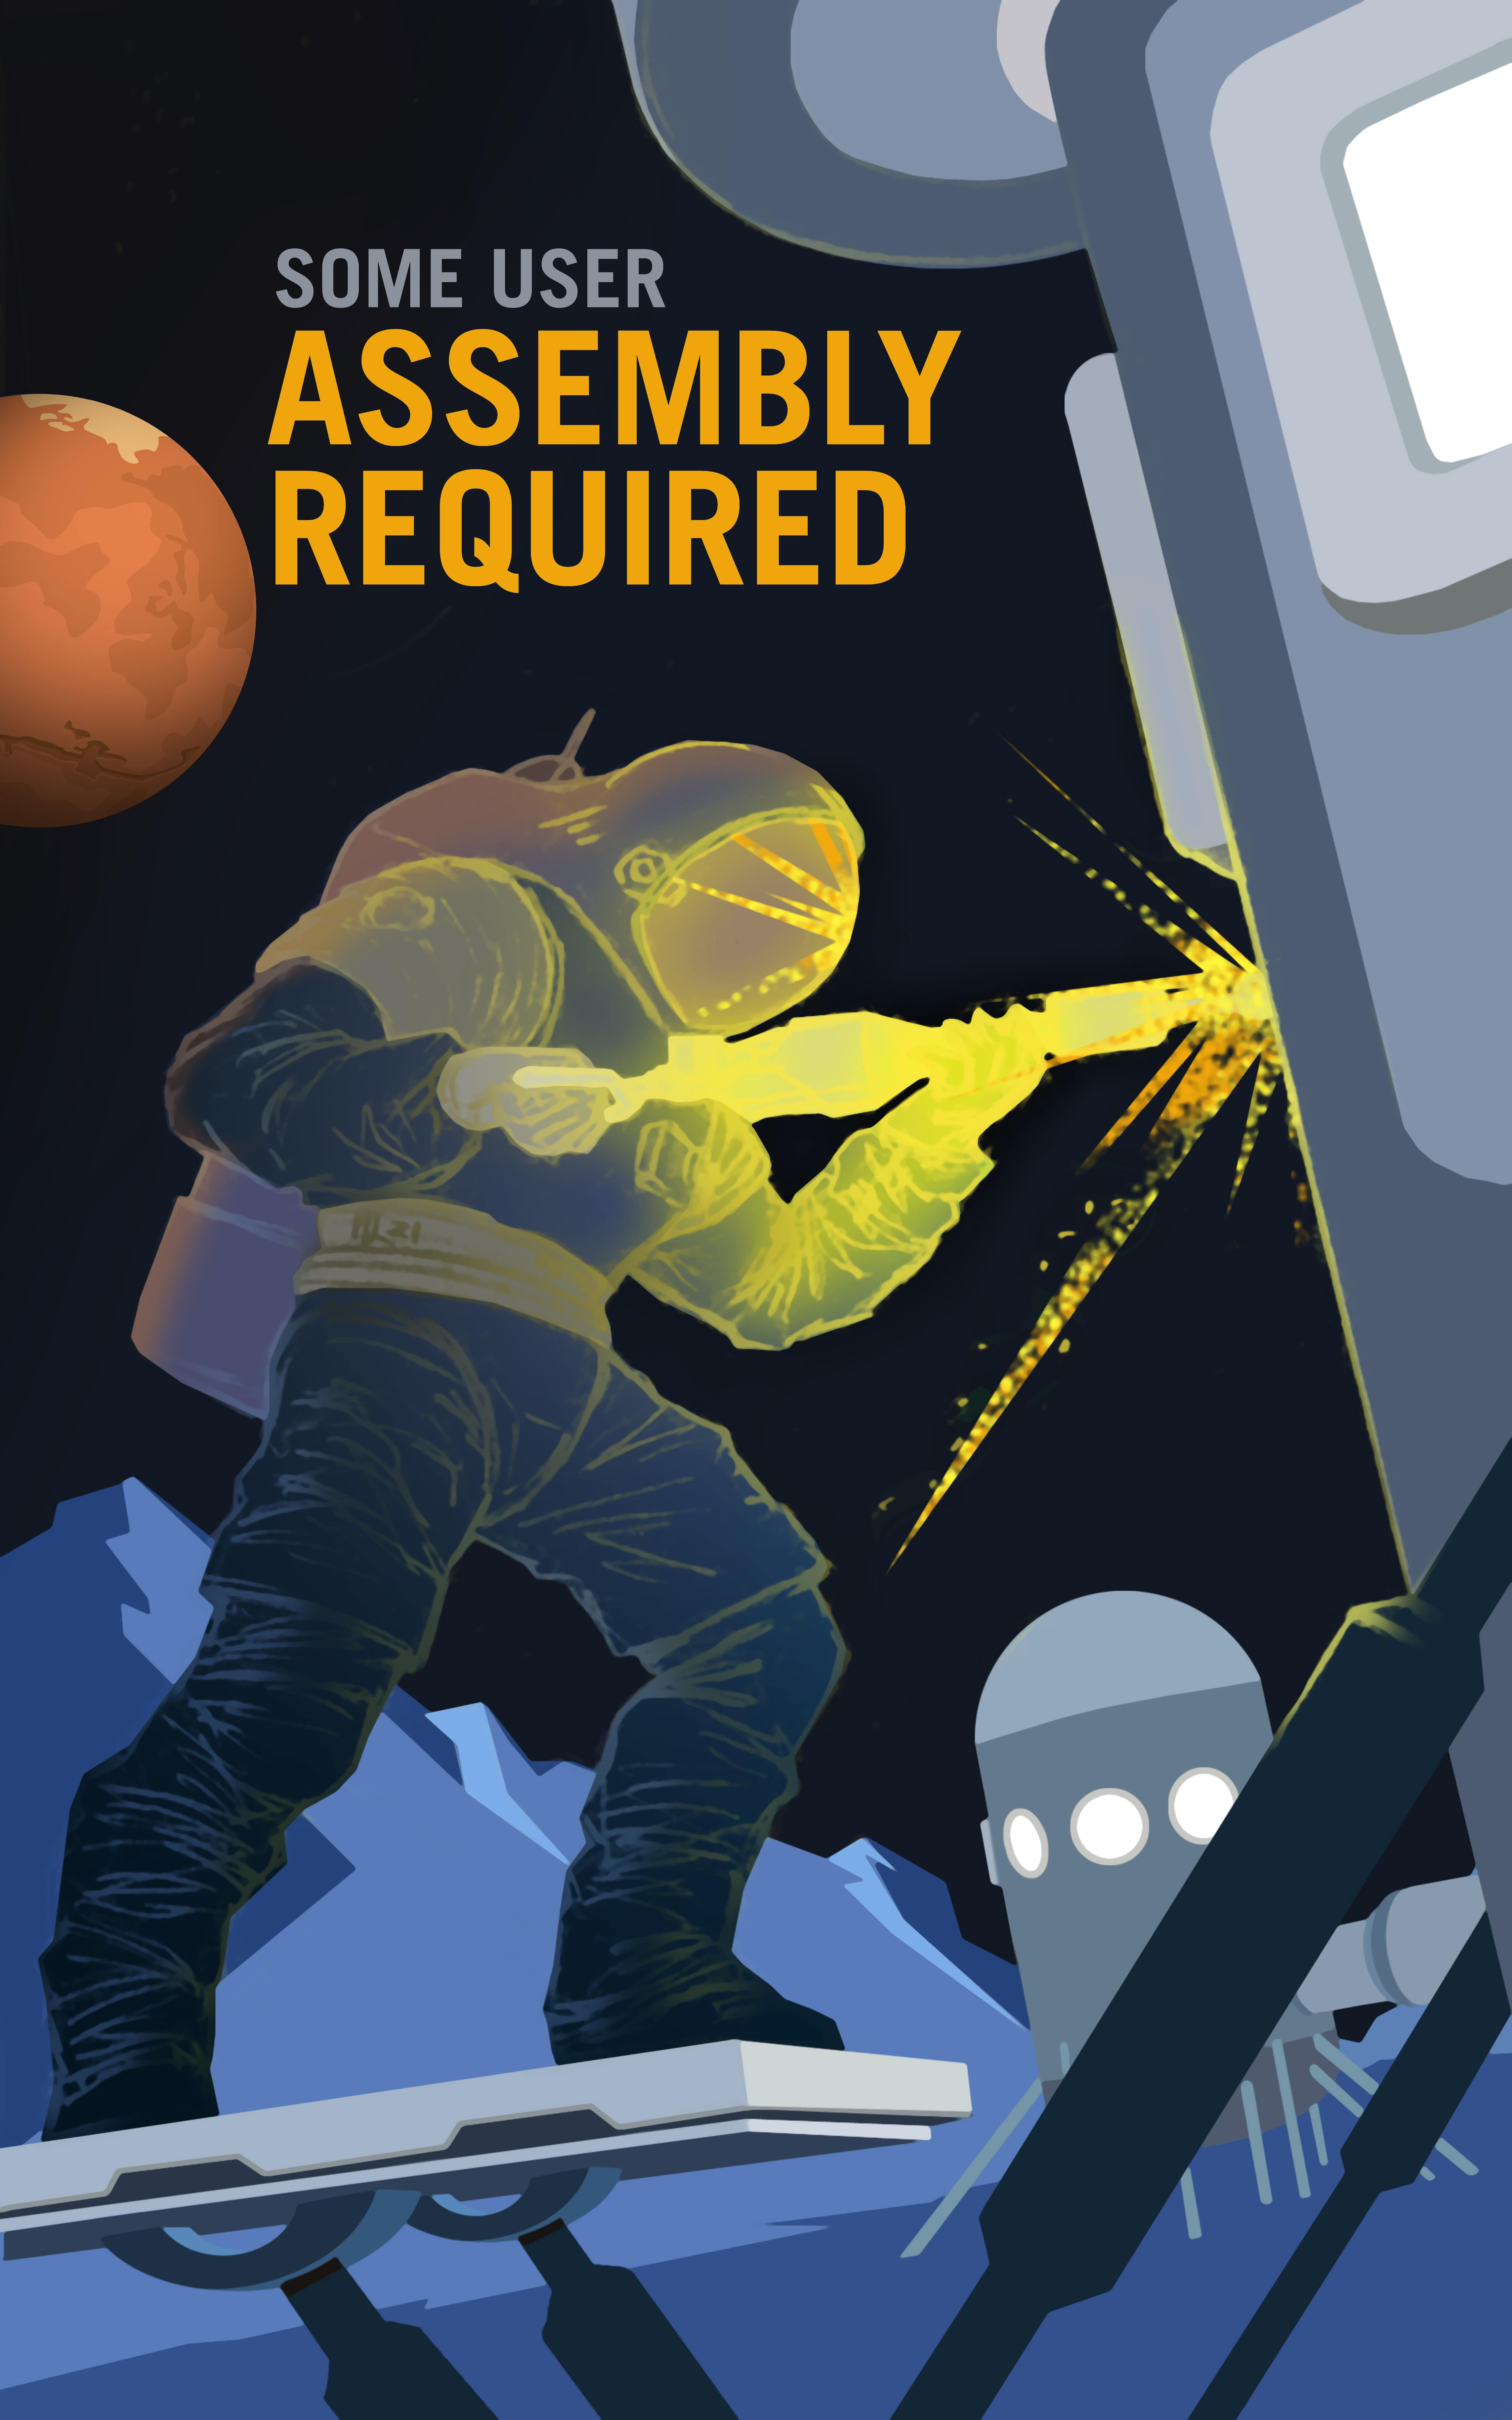 P07-Some-User-Assembly-Required-NASA-Recruitment-Poster-min